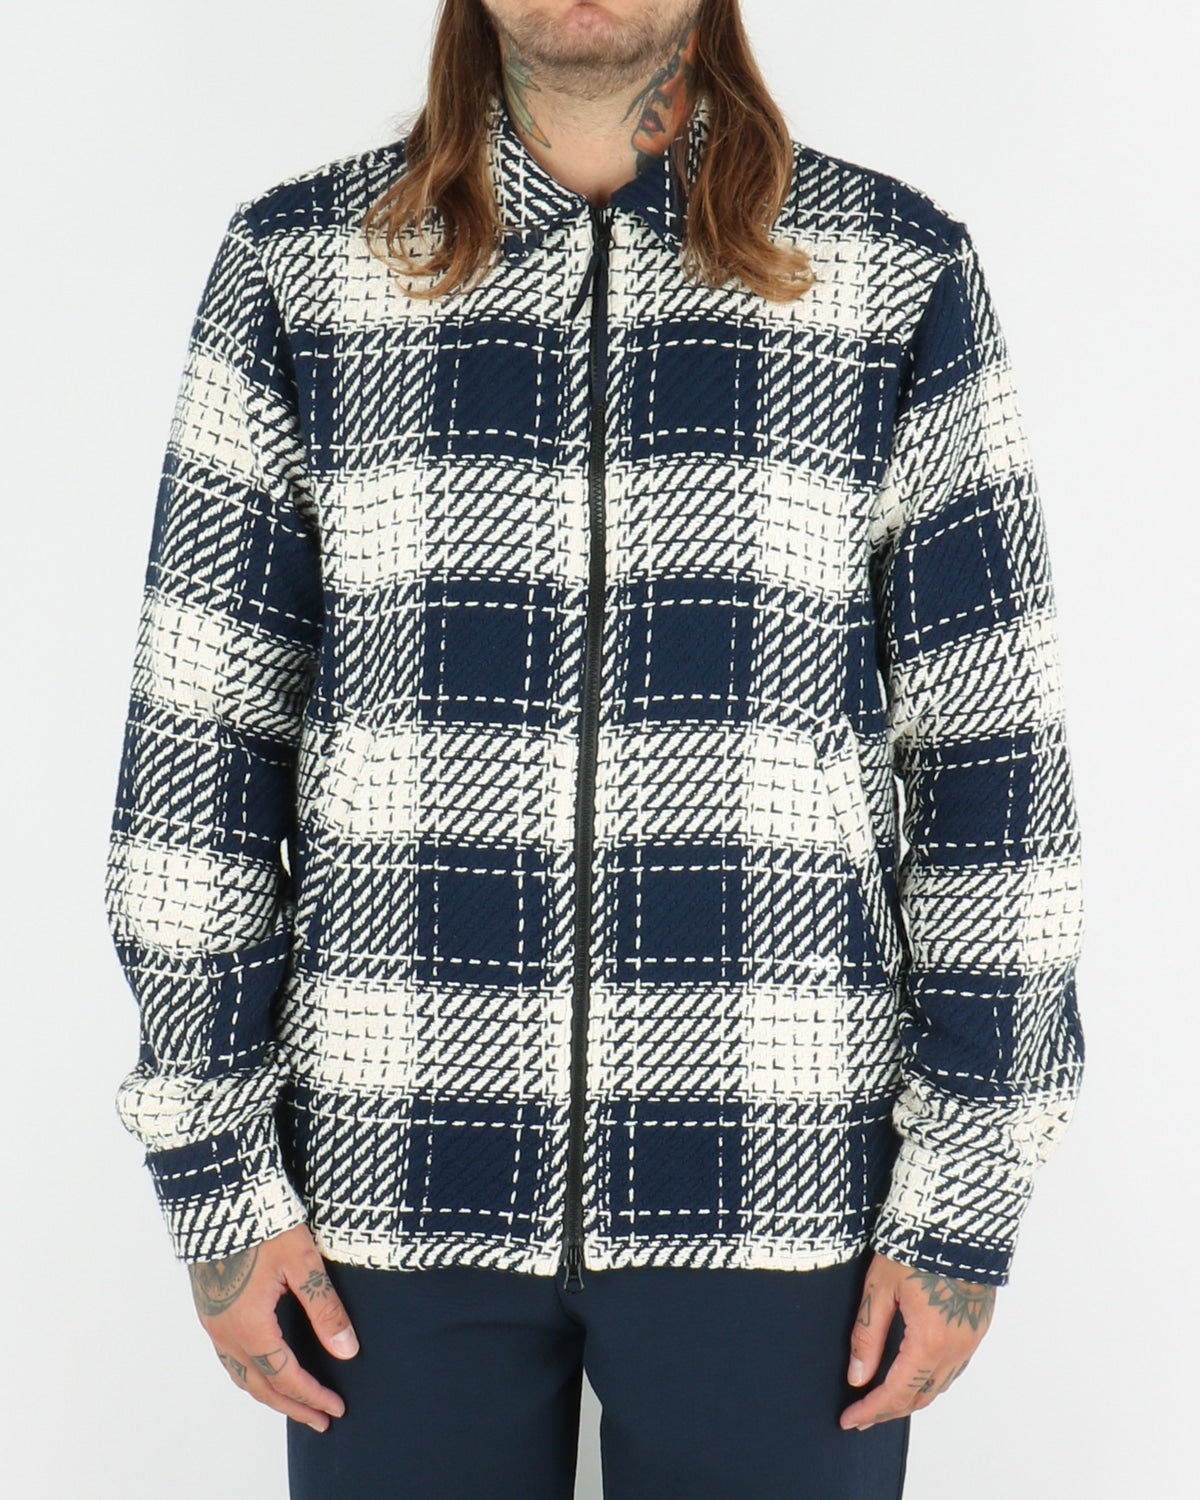 soulland_mapp light zip jacquard jacket_navy white_view_1_3